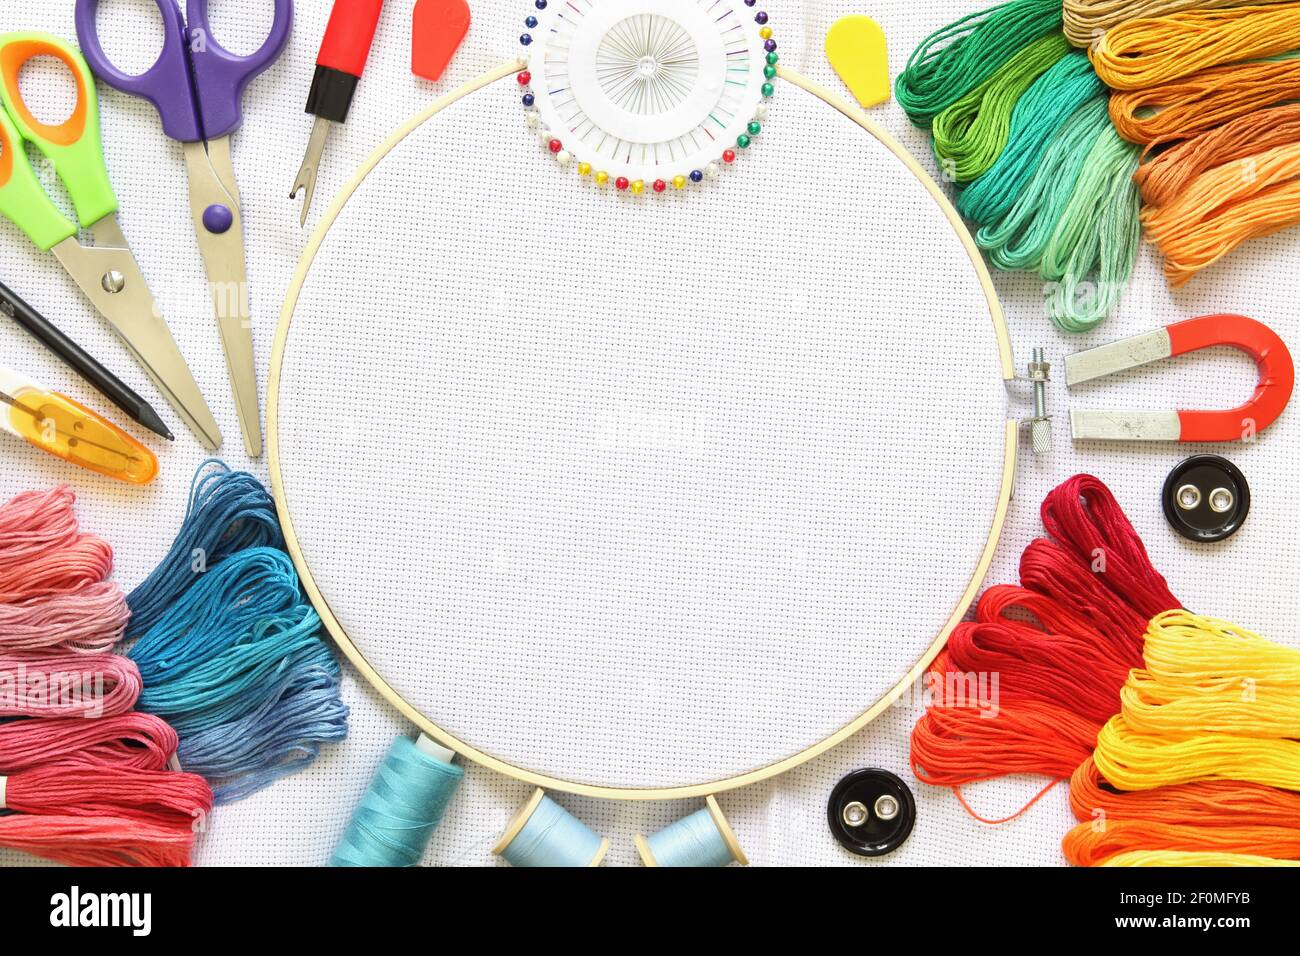 Embroidery hoop and multicolored accessories on white linen canvas with spools of thread, needle and scissors. Stock Photo